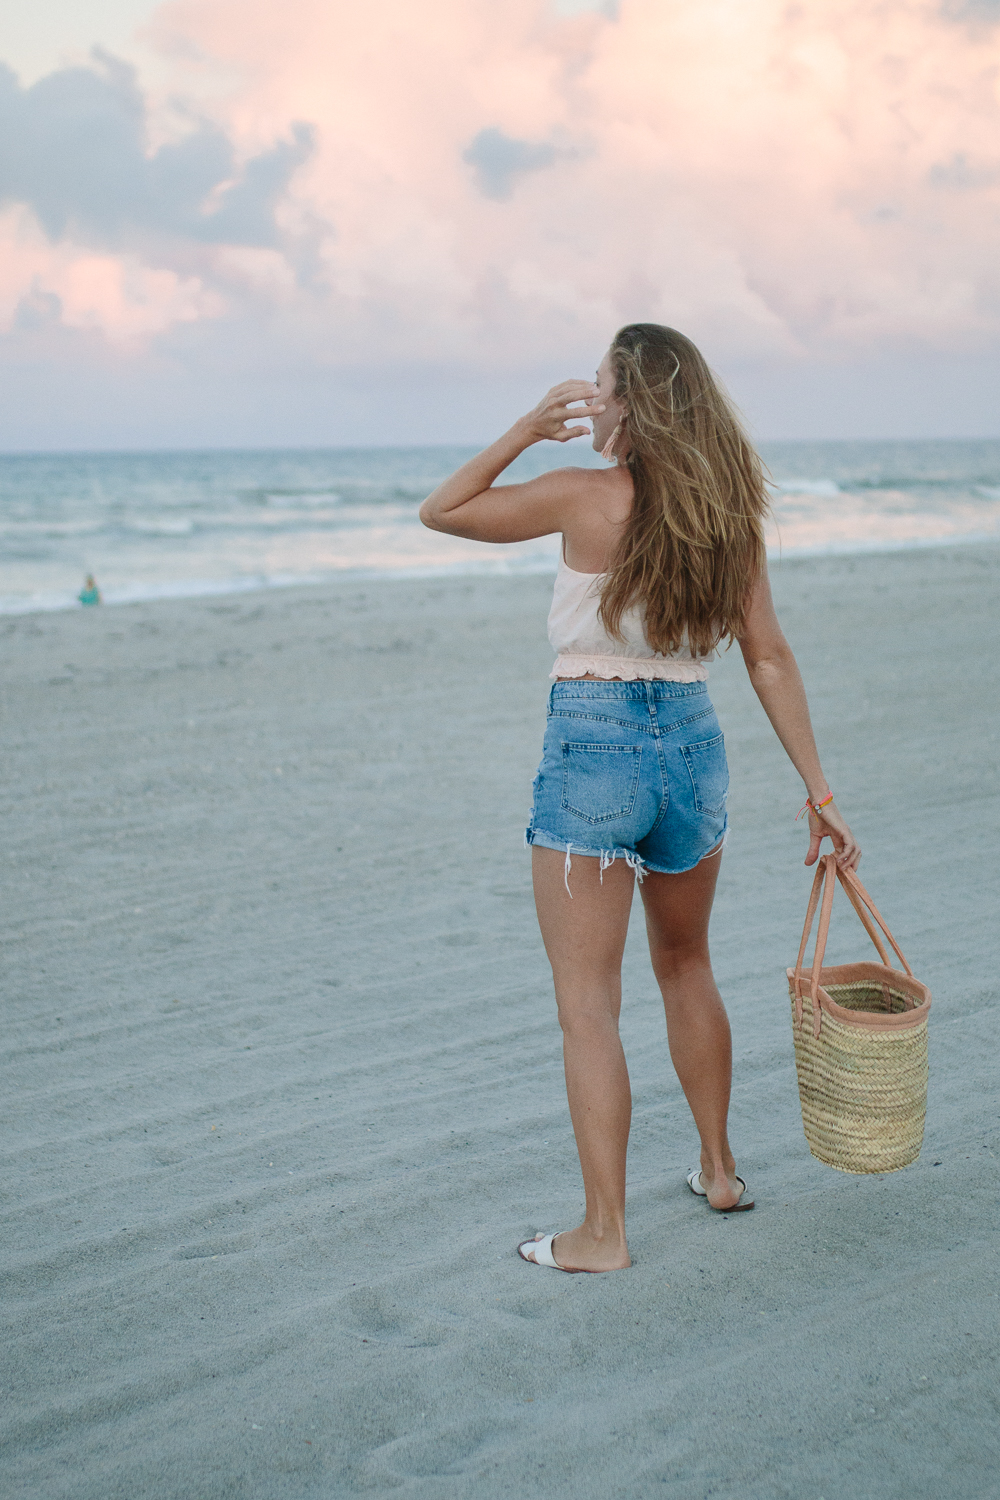 Sunset Beach Frolicking and Wanderlust | Sunshine Style